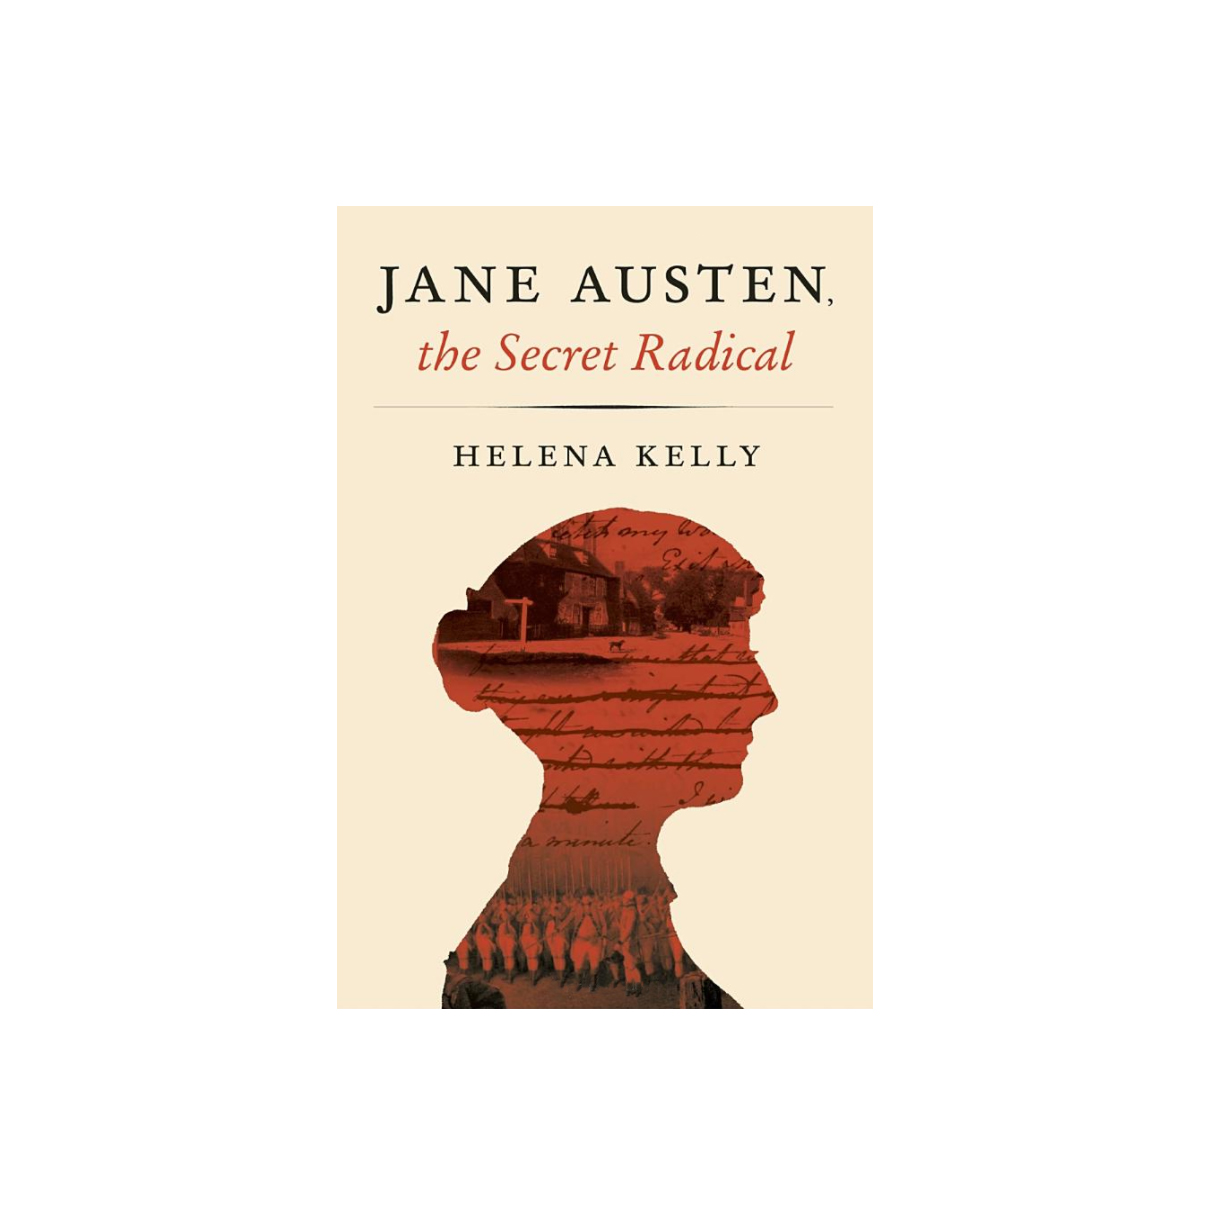 Jane Austen, the Secret Radical, by Helena Kelly